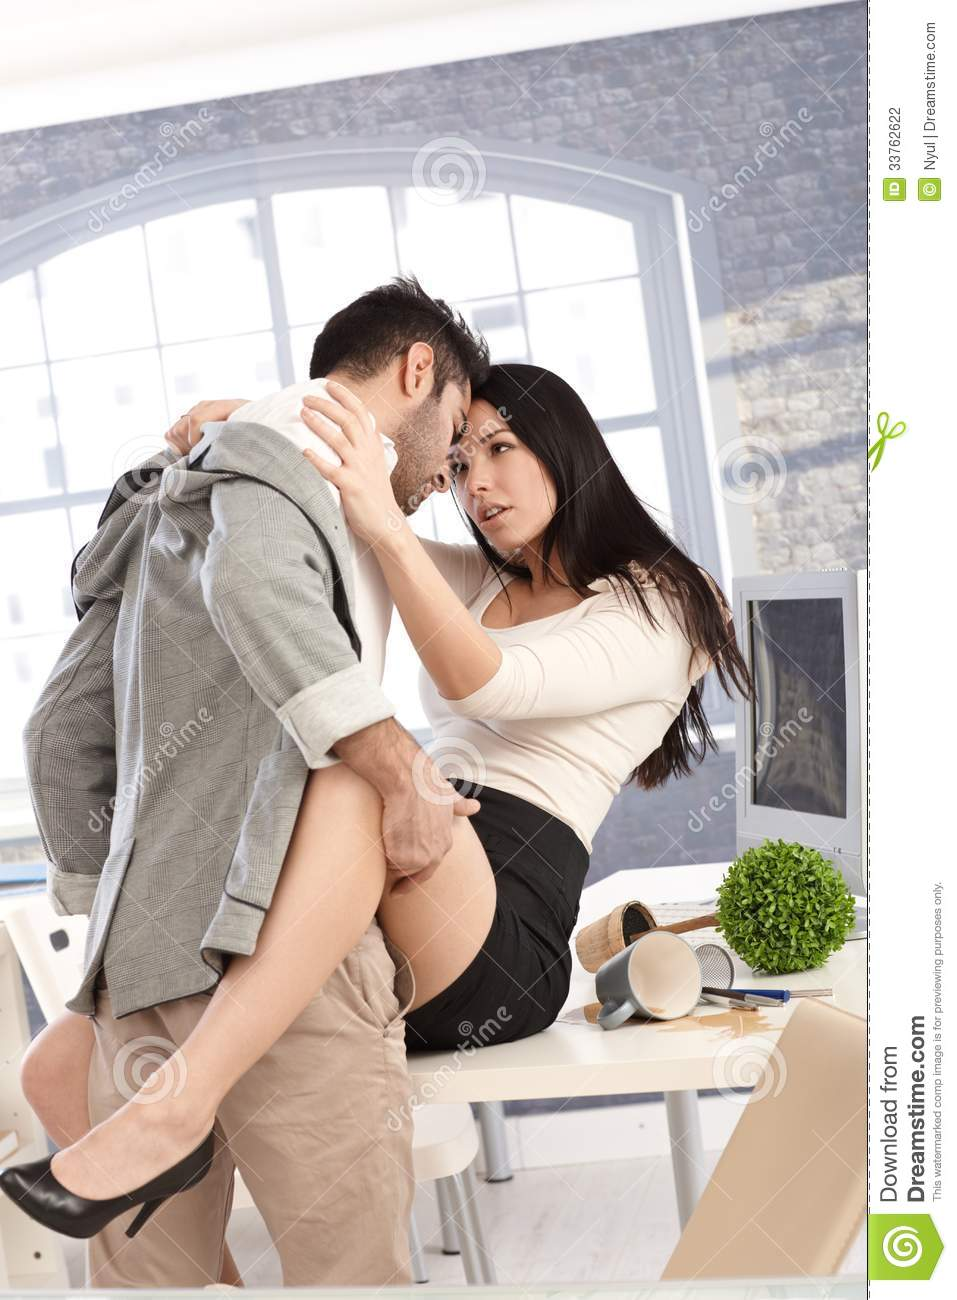 Hot Office Sex Stock Photo Image Of Affair, Beautiful-6656